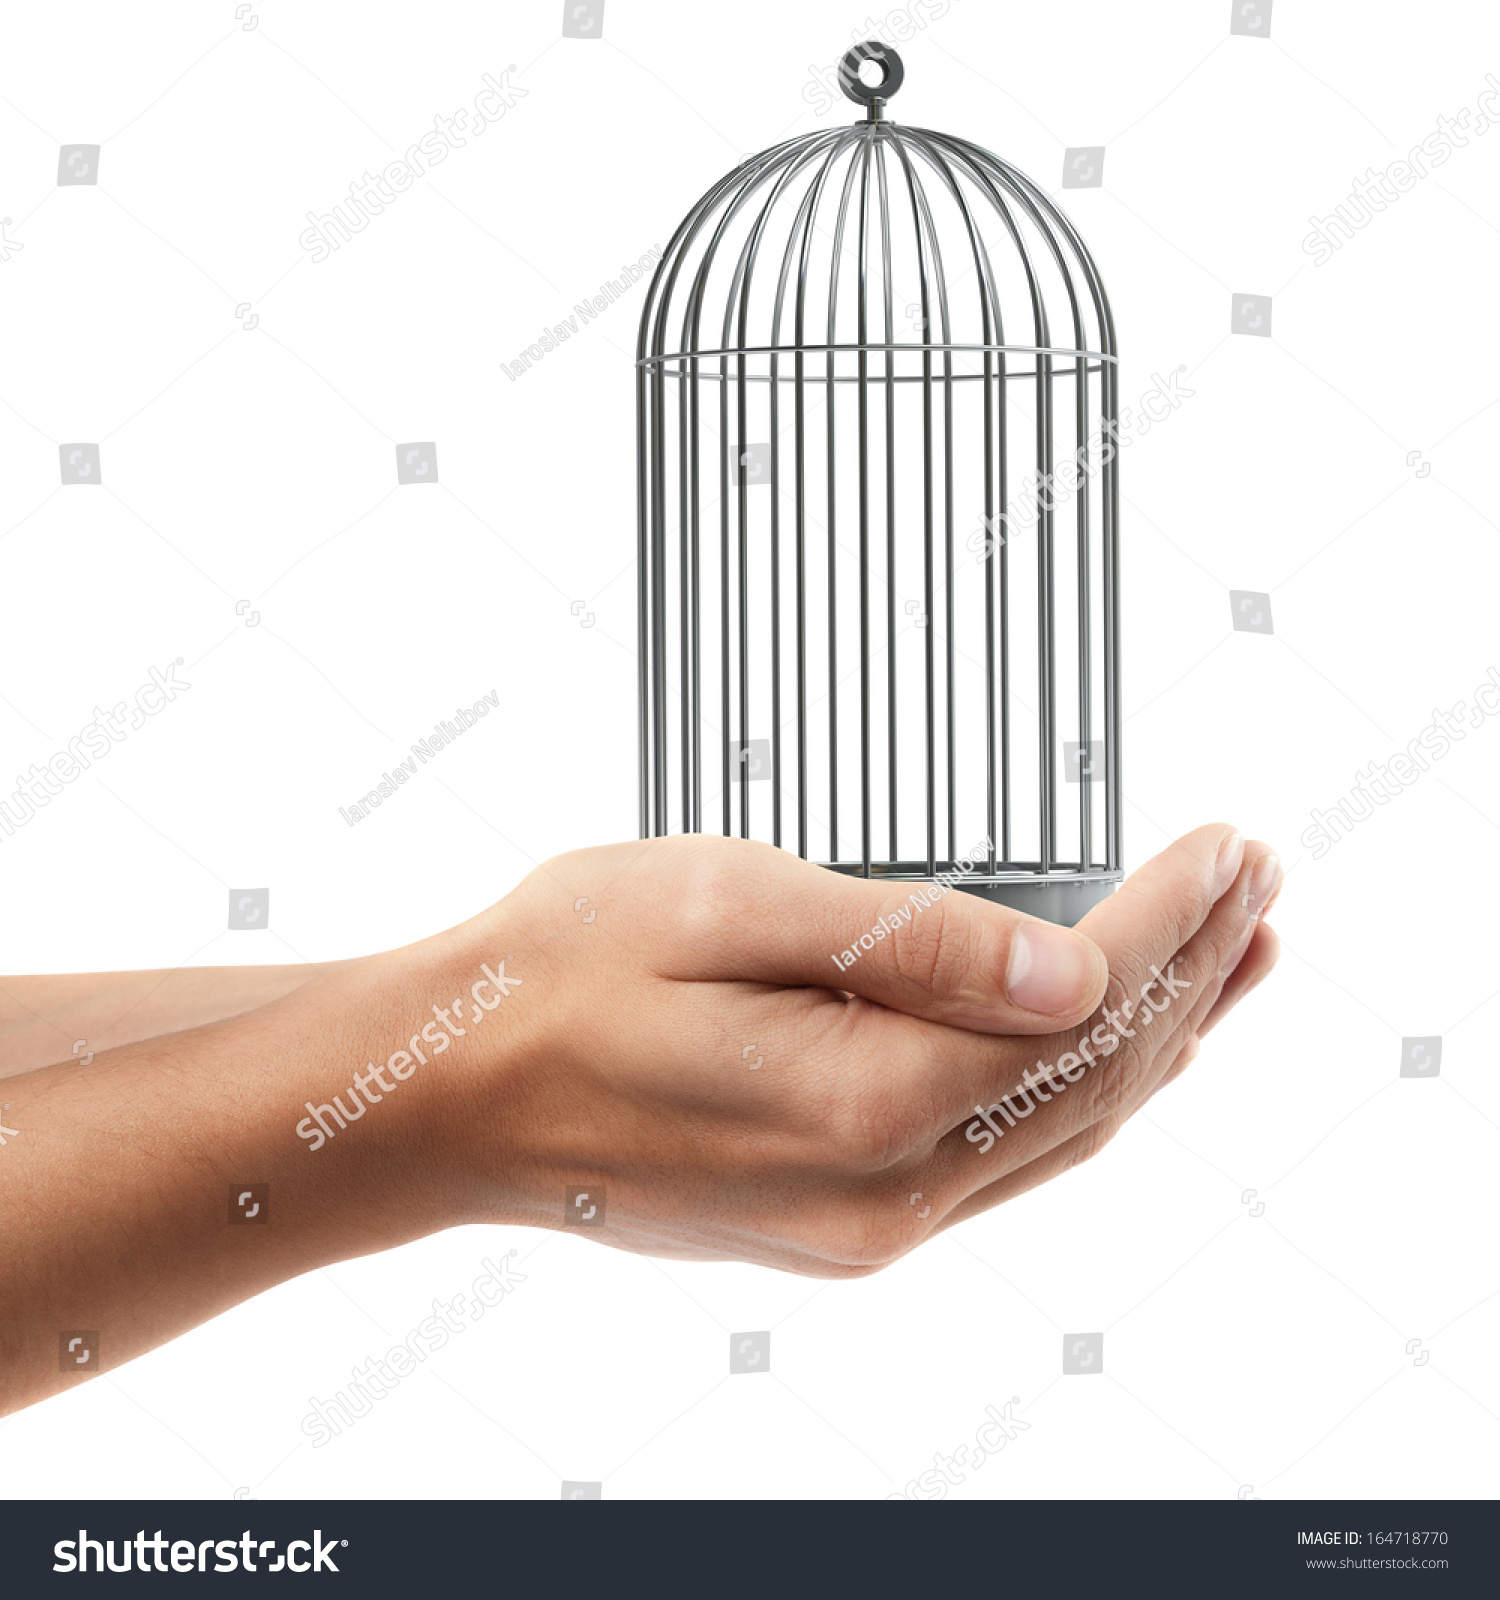 bird in hand single guys The cost calculator is intended to provide a ballpark estimate for information purposes only and is not to be considered an actual quote of your total moving cost data provided b.